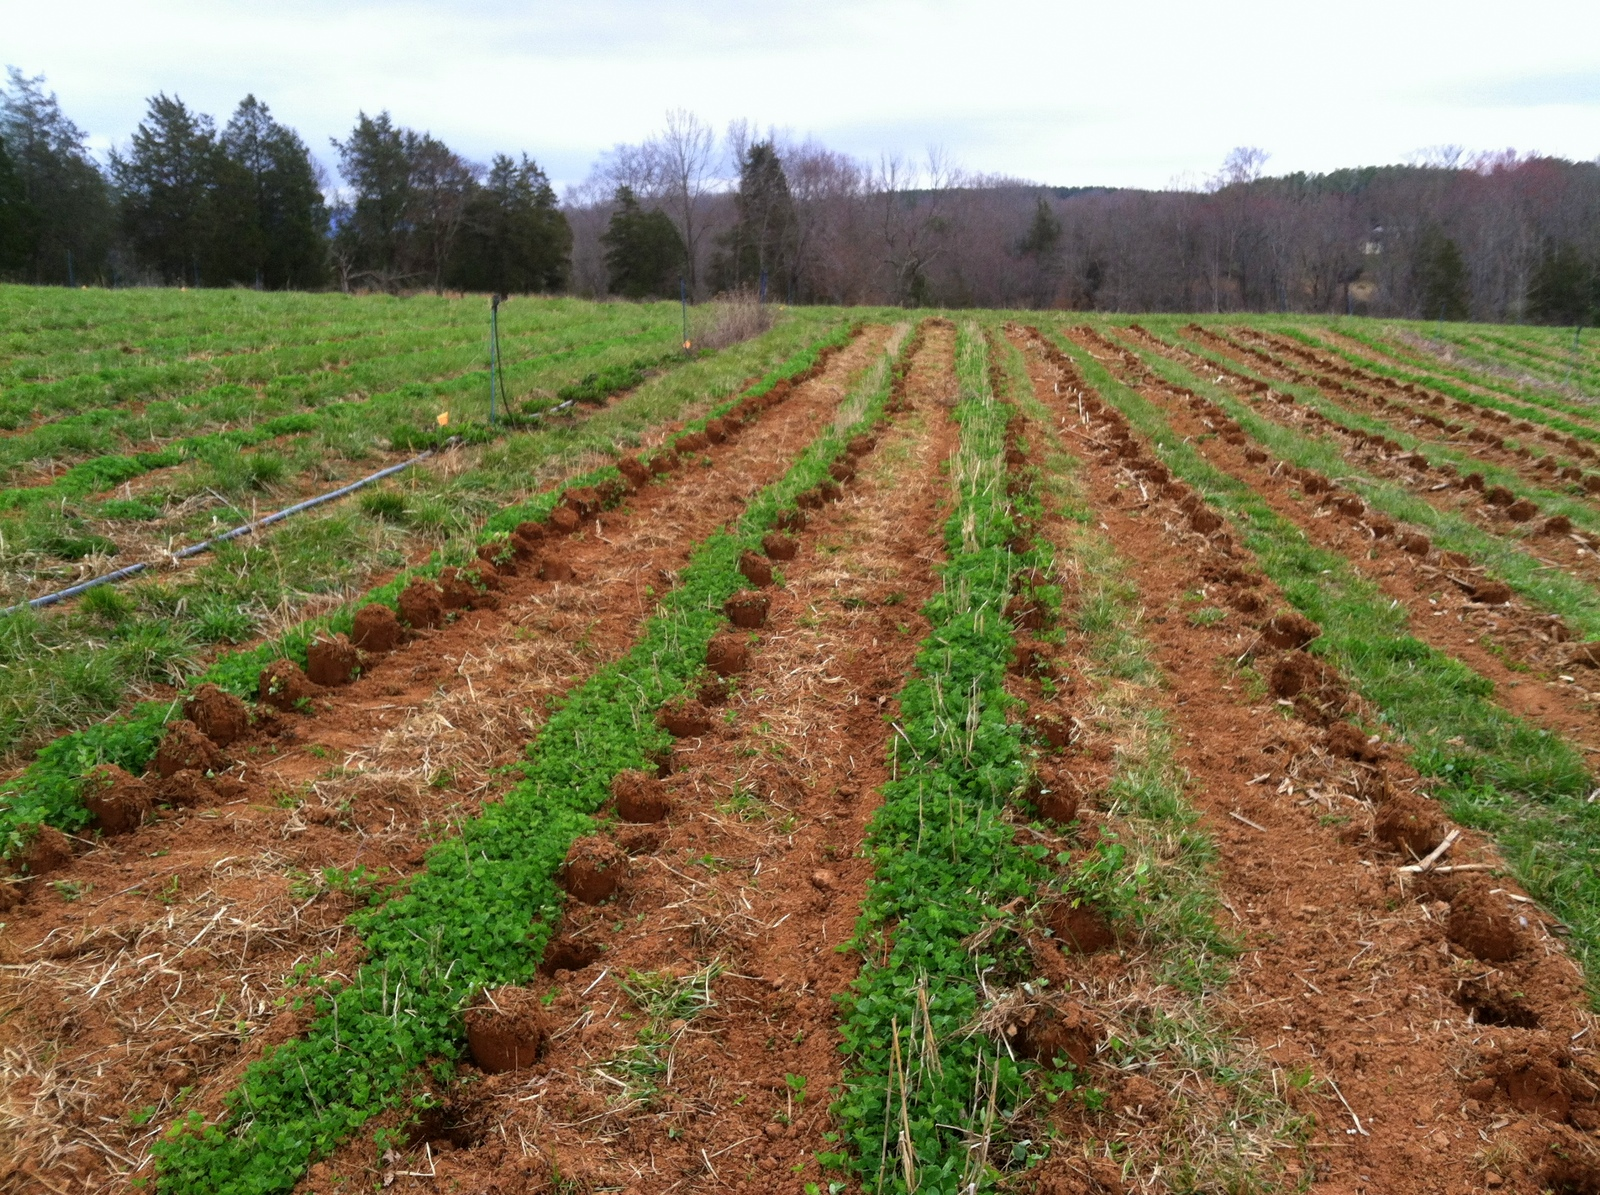 A funny scene. Past research and my own experiments show a somewhat steady lb/acre yield within a pretty large window of potato spacing. With red clover in the middle, and the pathways tilled to install white clover, there isn't space for a traditional potato hilling. Instead of 1' spacing in a furrow, for this early potato planting we have 2' spacing and post-holes.